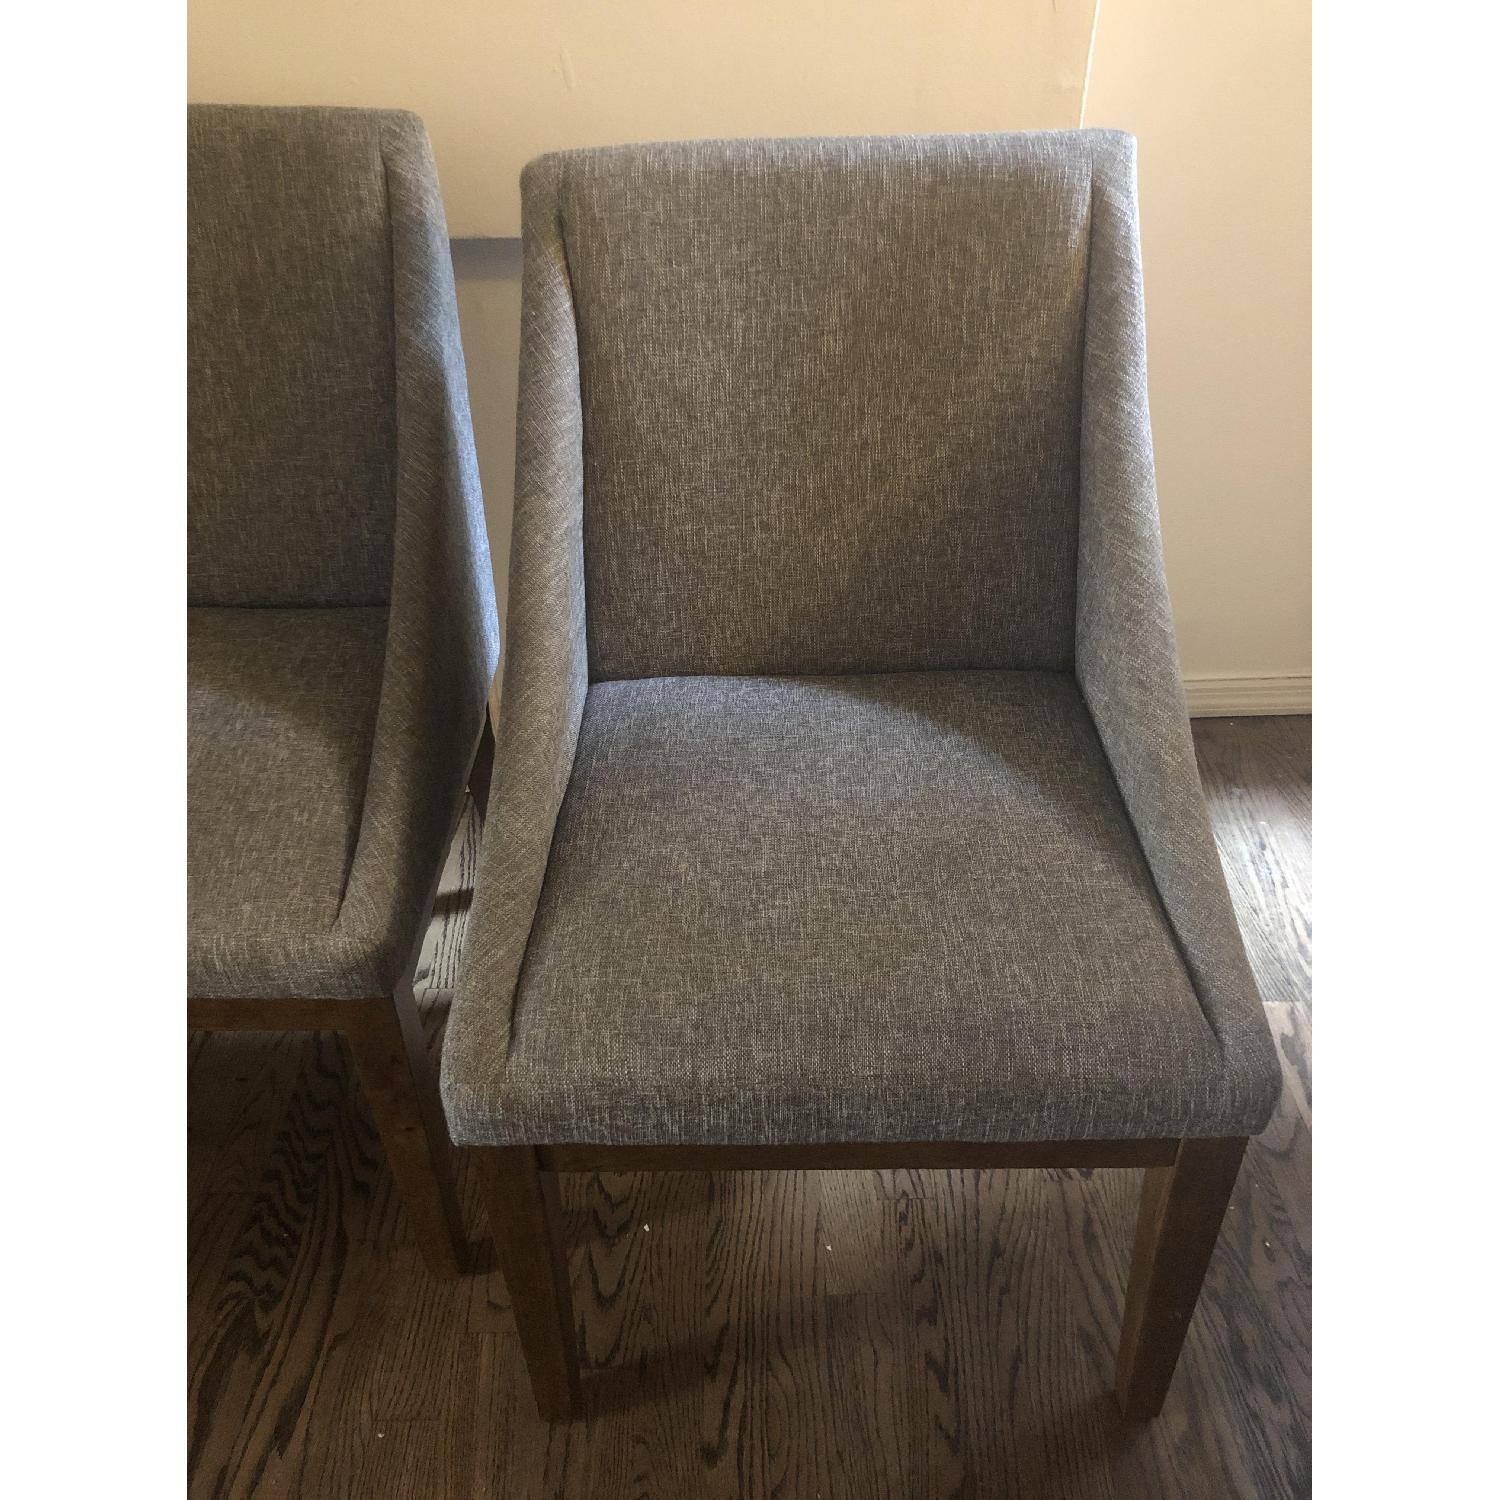 West Elm Curved Upholstered Chairs - image-1